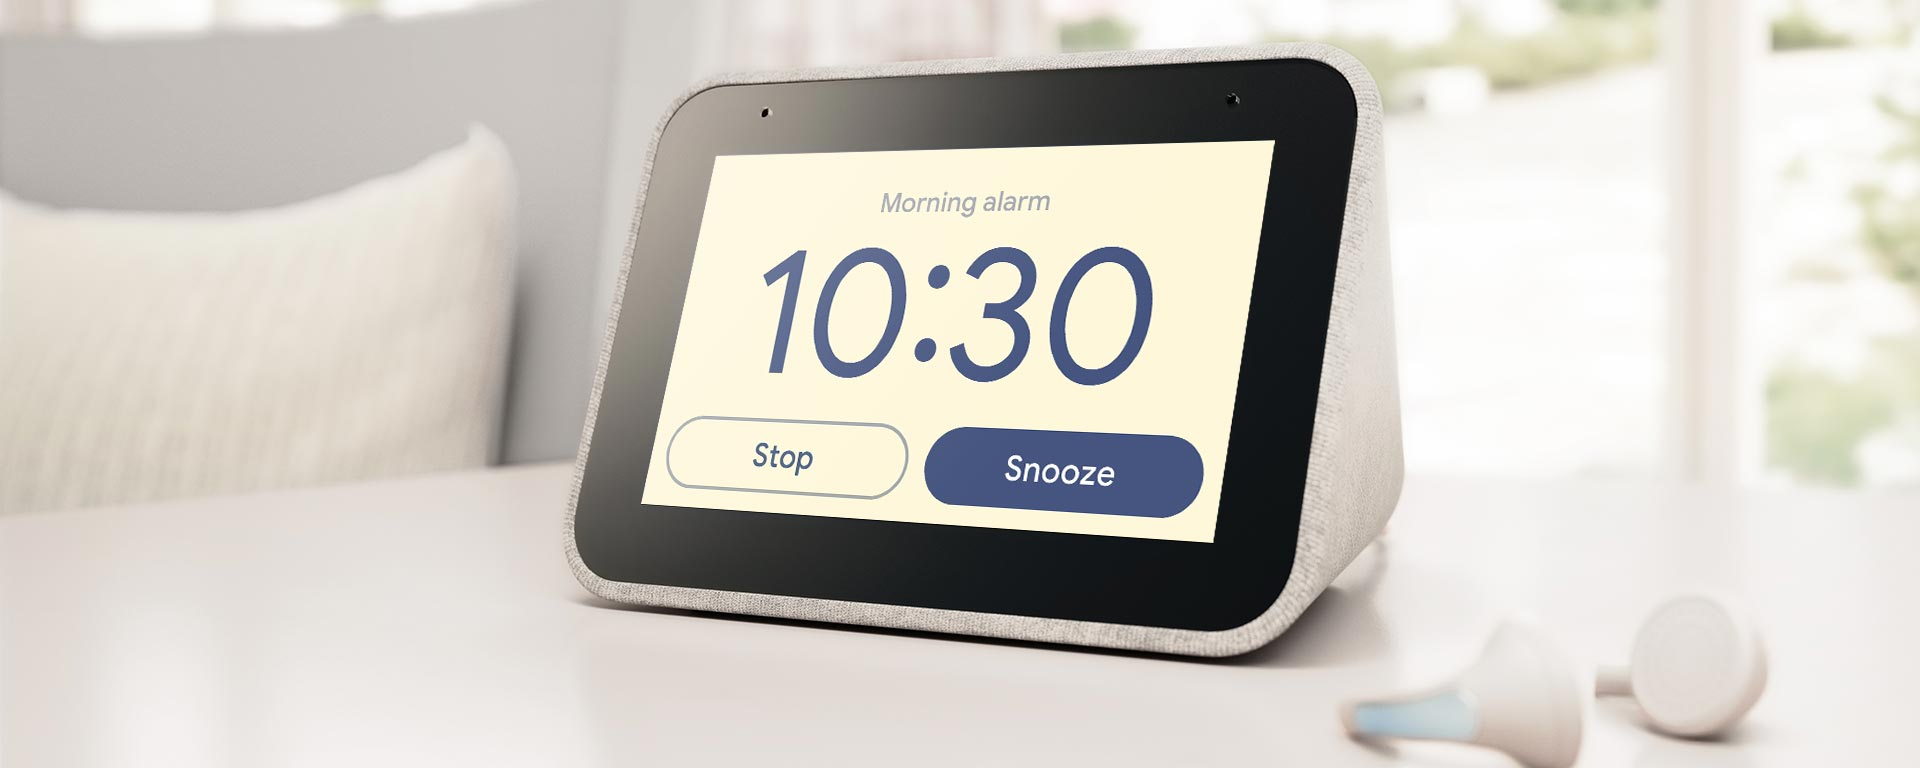 alarme Smart Clock Morning de Lenovo